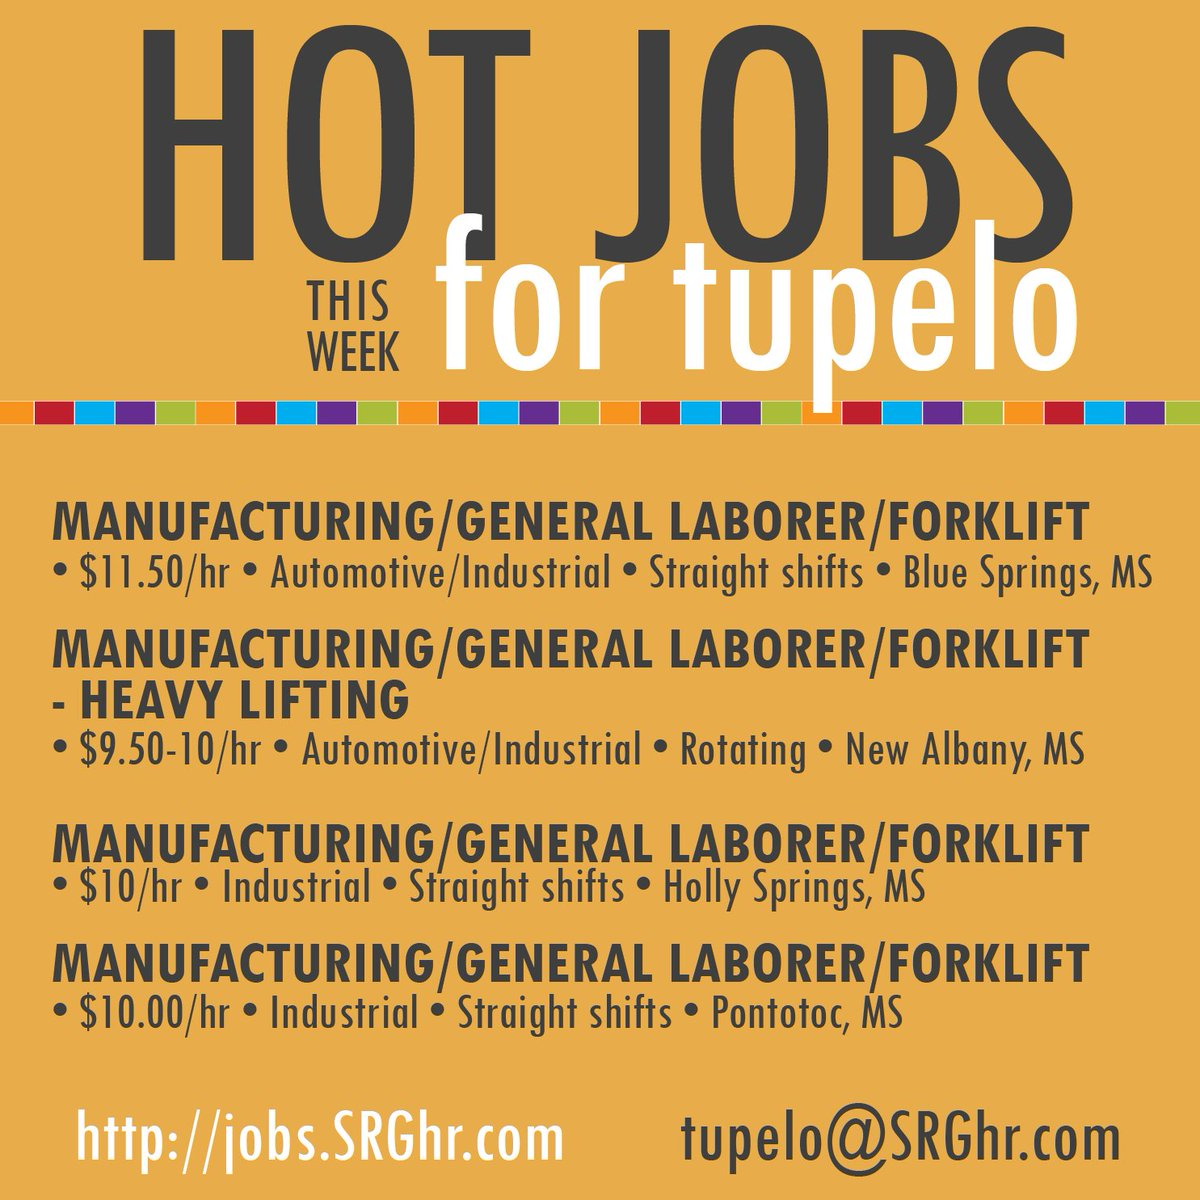 Looking for work in #Mississippi? We have just the thing! #Manufacturing, #Laborer and #Forklift opportunities in #BlueSpringsMS, #NewAlbanyMS, #HollySpringsMS and #PontotocMS. Apply today! 662-791-7877 tupelo@SRGhr.com  http:// jobs.SRGhr.com  &nbsp;   #SRGgethired<br>http://pic.twitter.com/5vSHVE2DG4